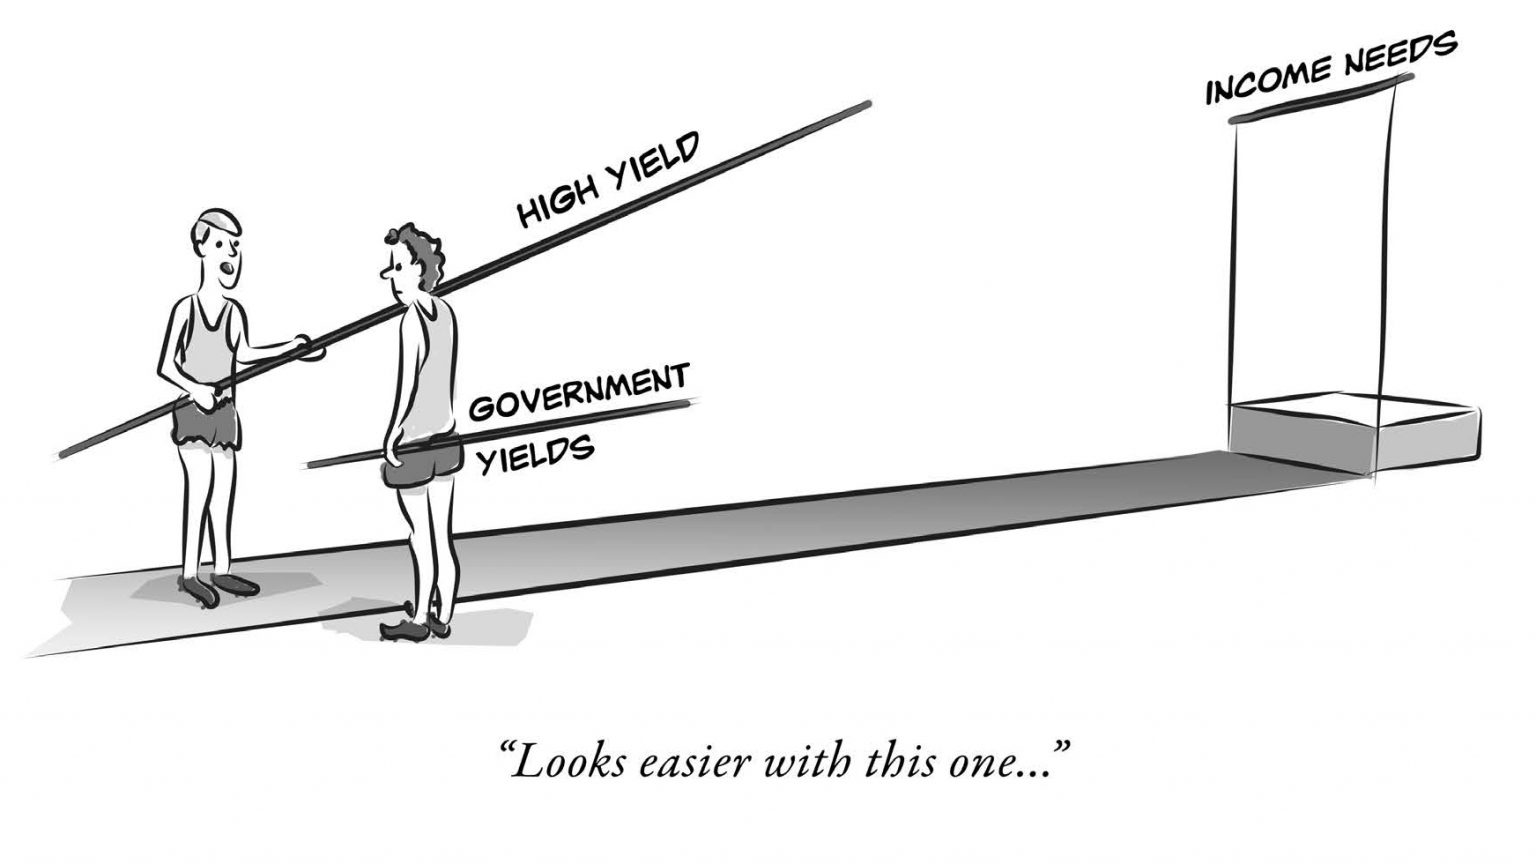 Cartoon depicting how investing in high yield appears to look easier than doing so with government yields